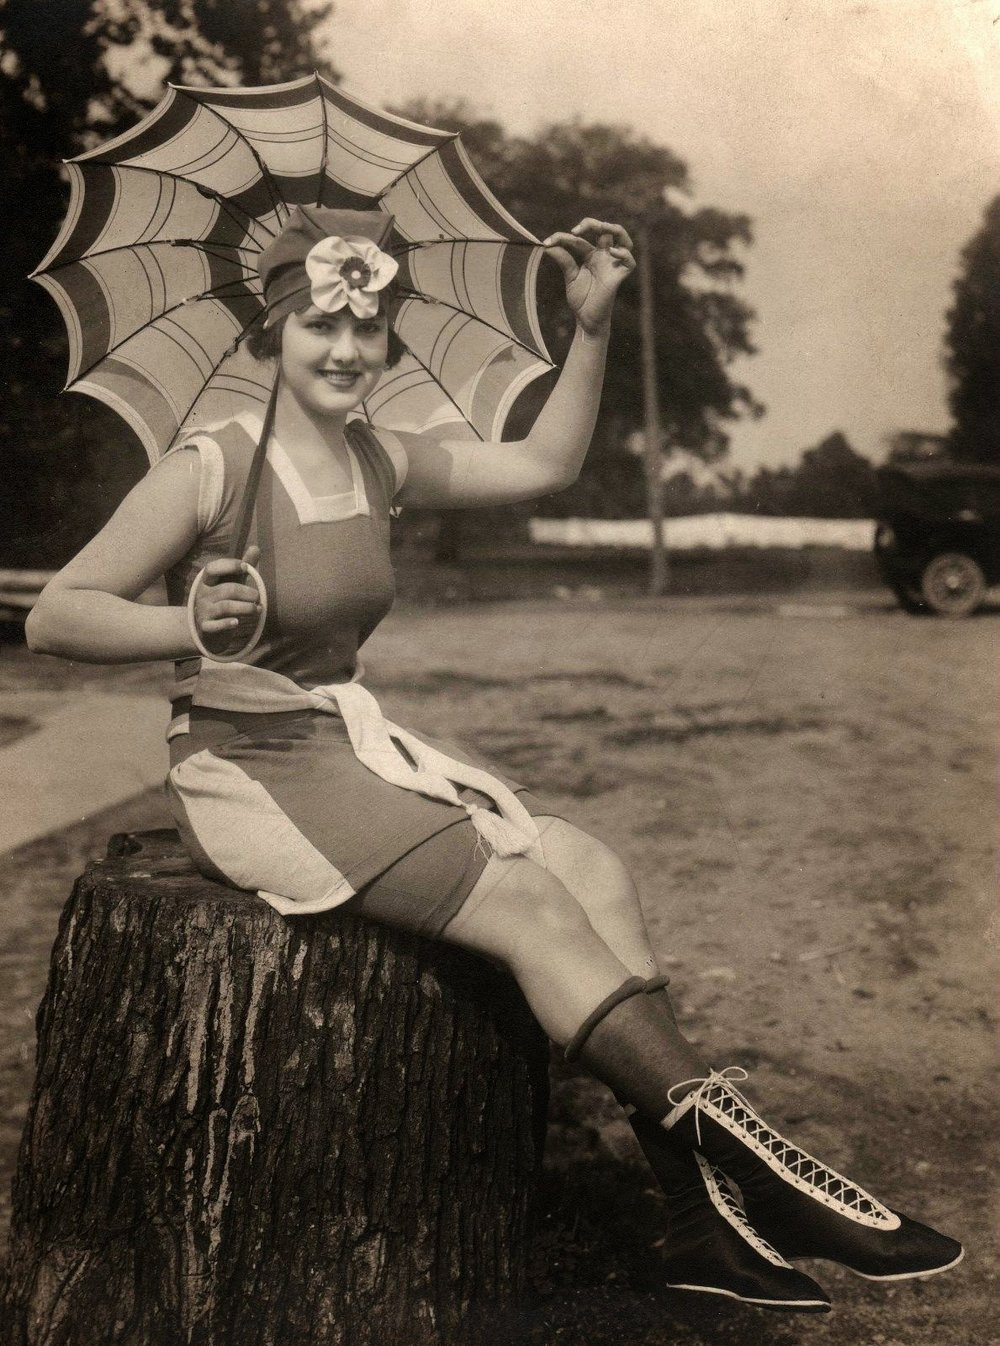 Bathing beauty with umbrella, rolled hose, and hightop shoes. Dayton, Ohio, 1920s.jpg